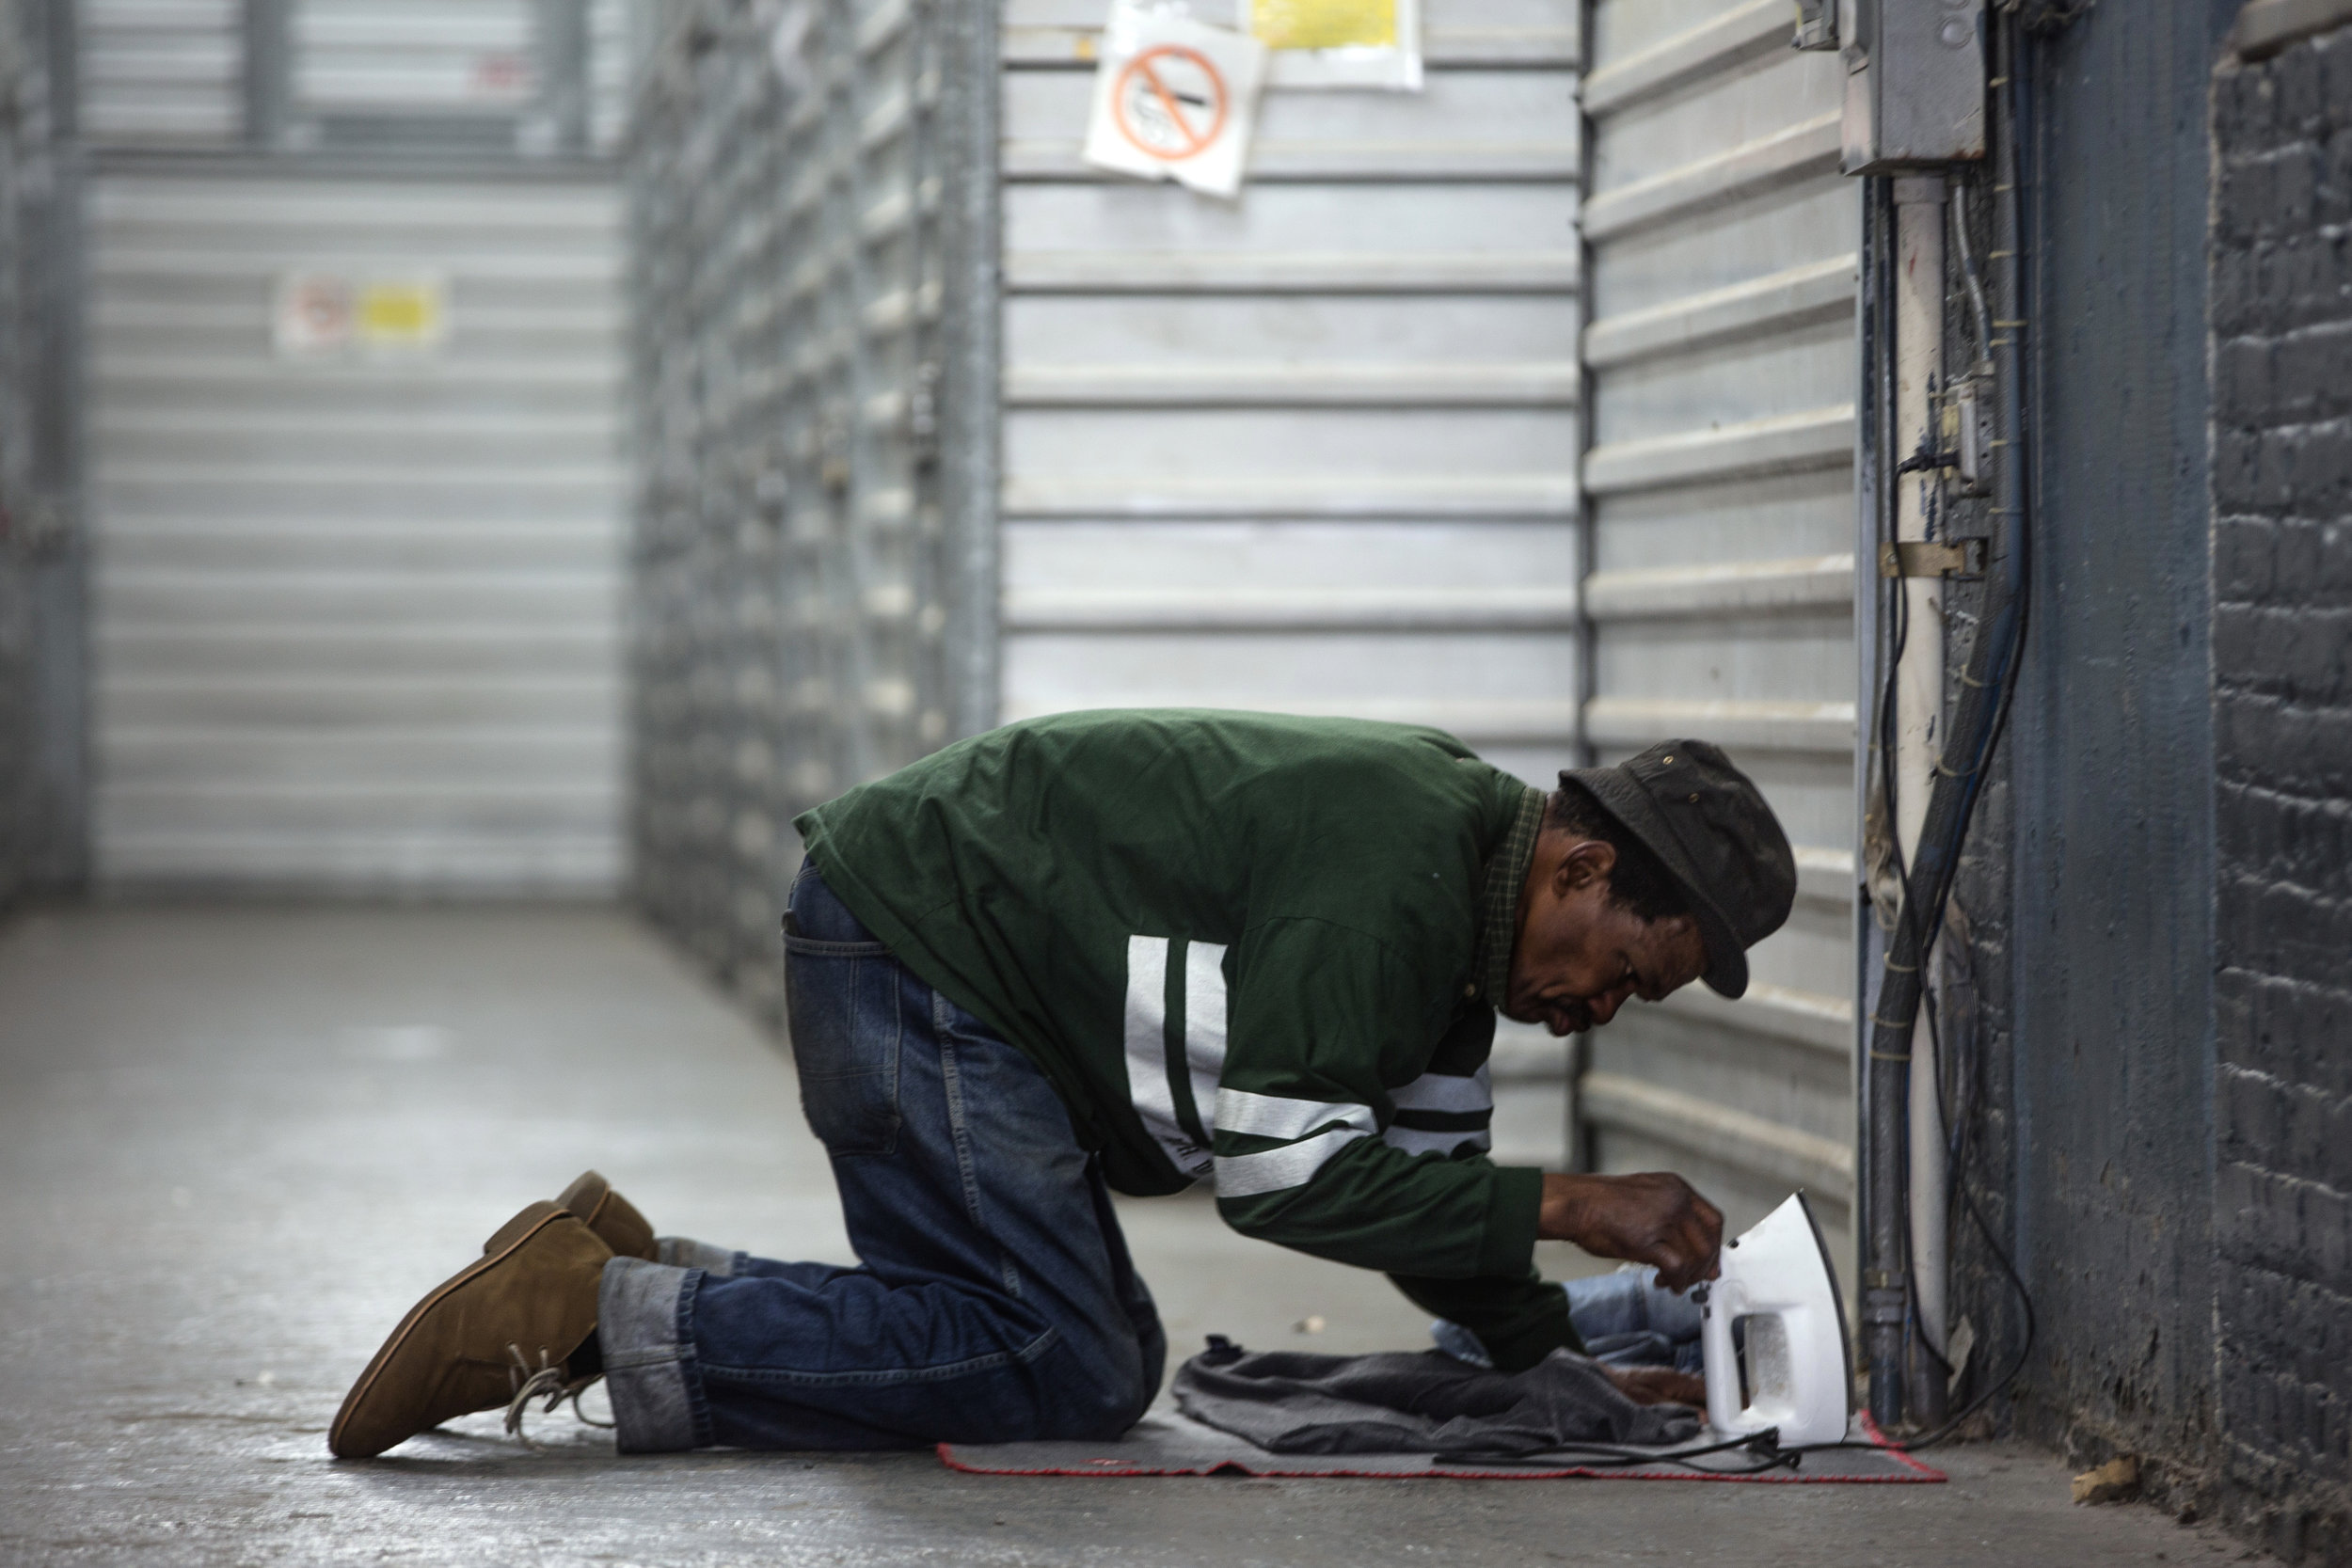 A homeless man (did not want to be identified) uses an electrical outlet to iron his clothes in a hallway between storage units.